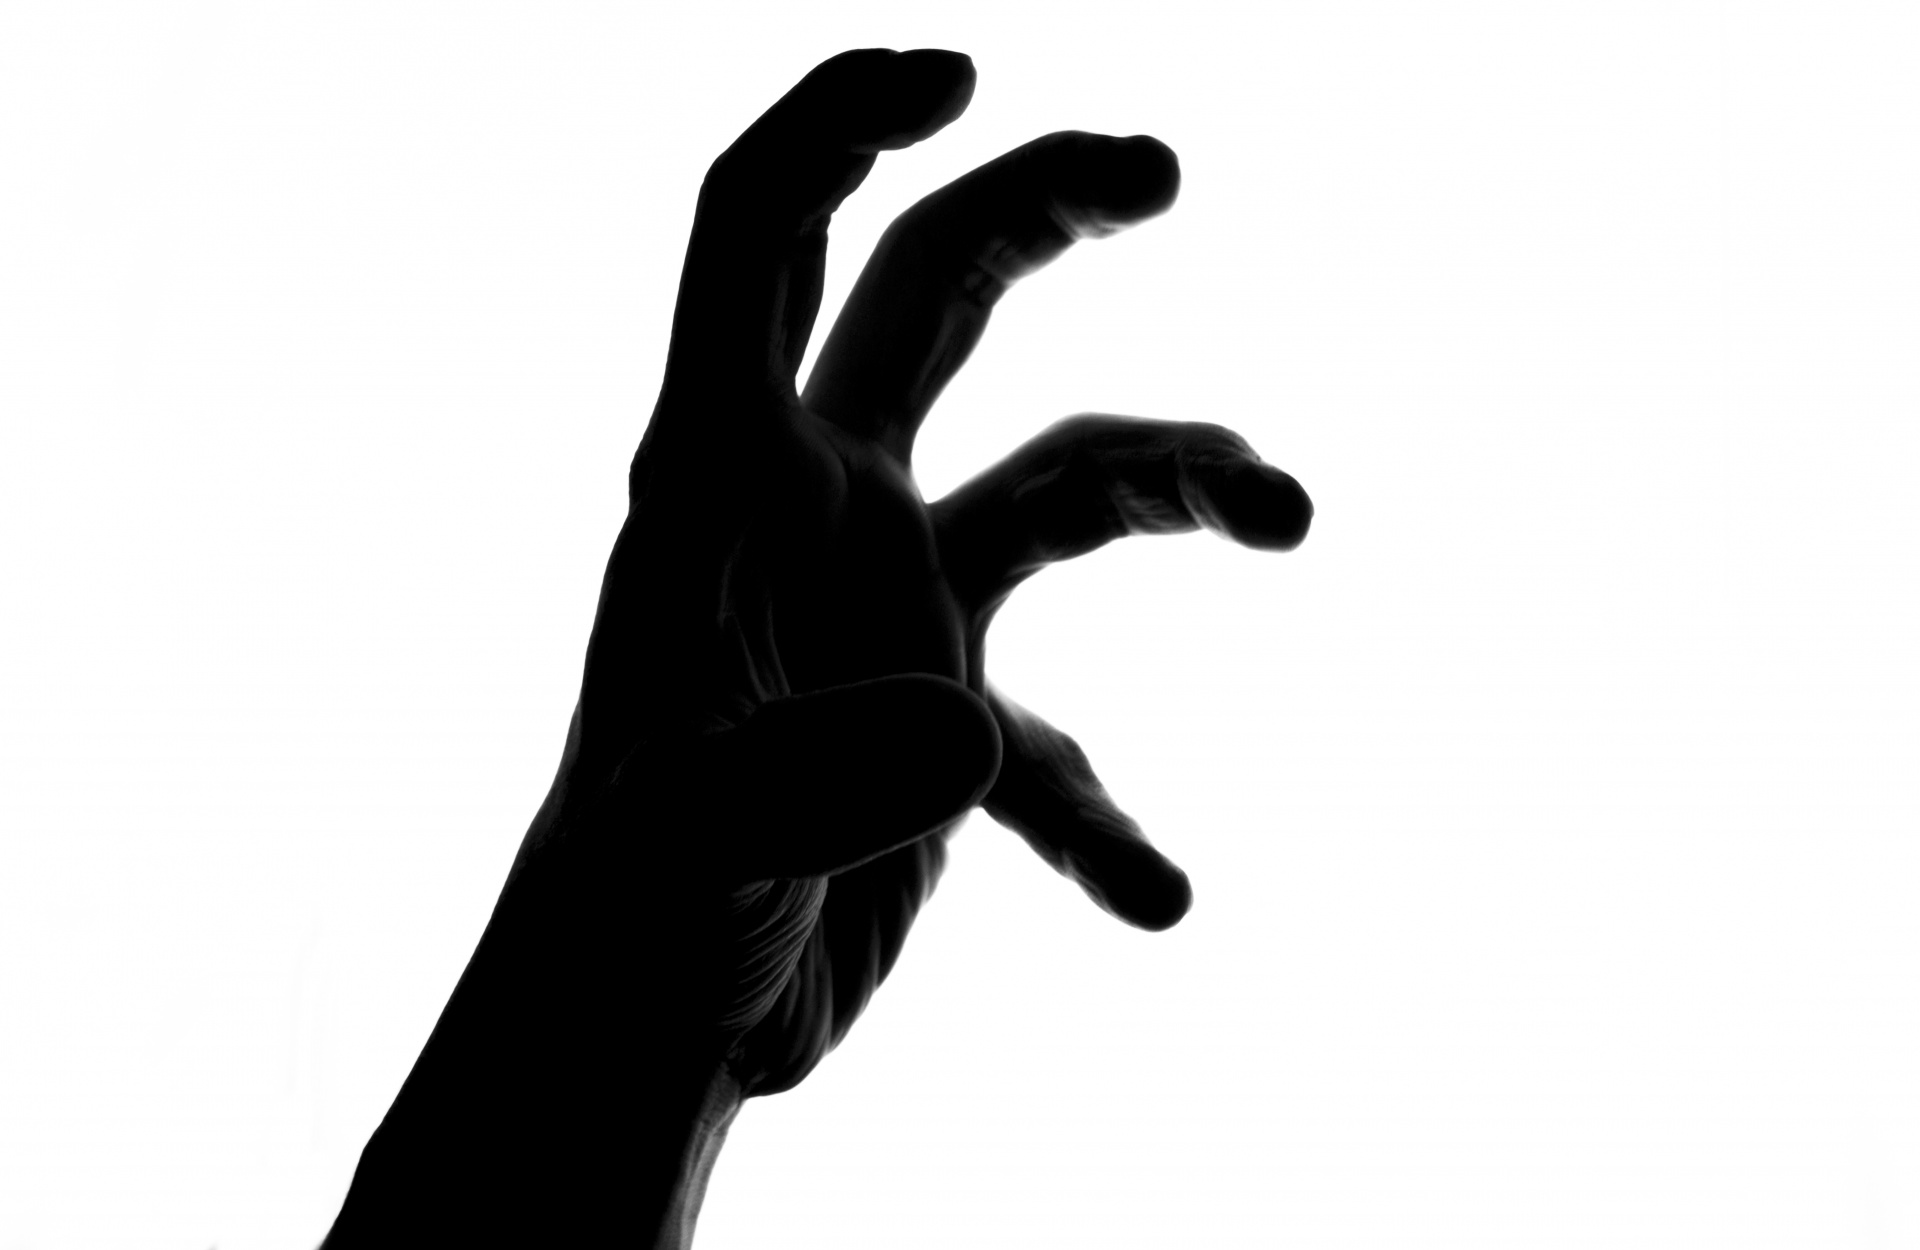 1920x1250 Silhouette Of Scary Hand Free Stock Photo